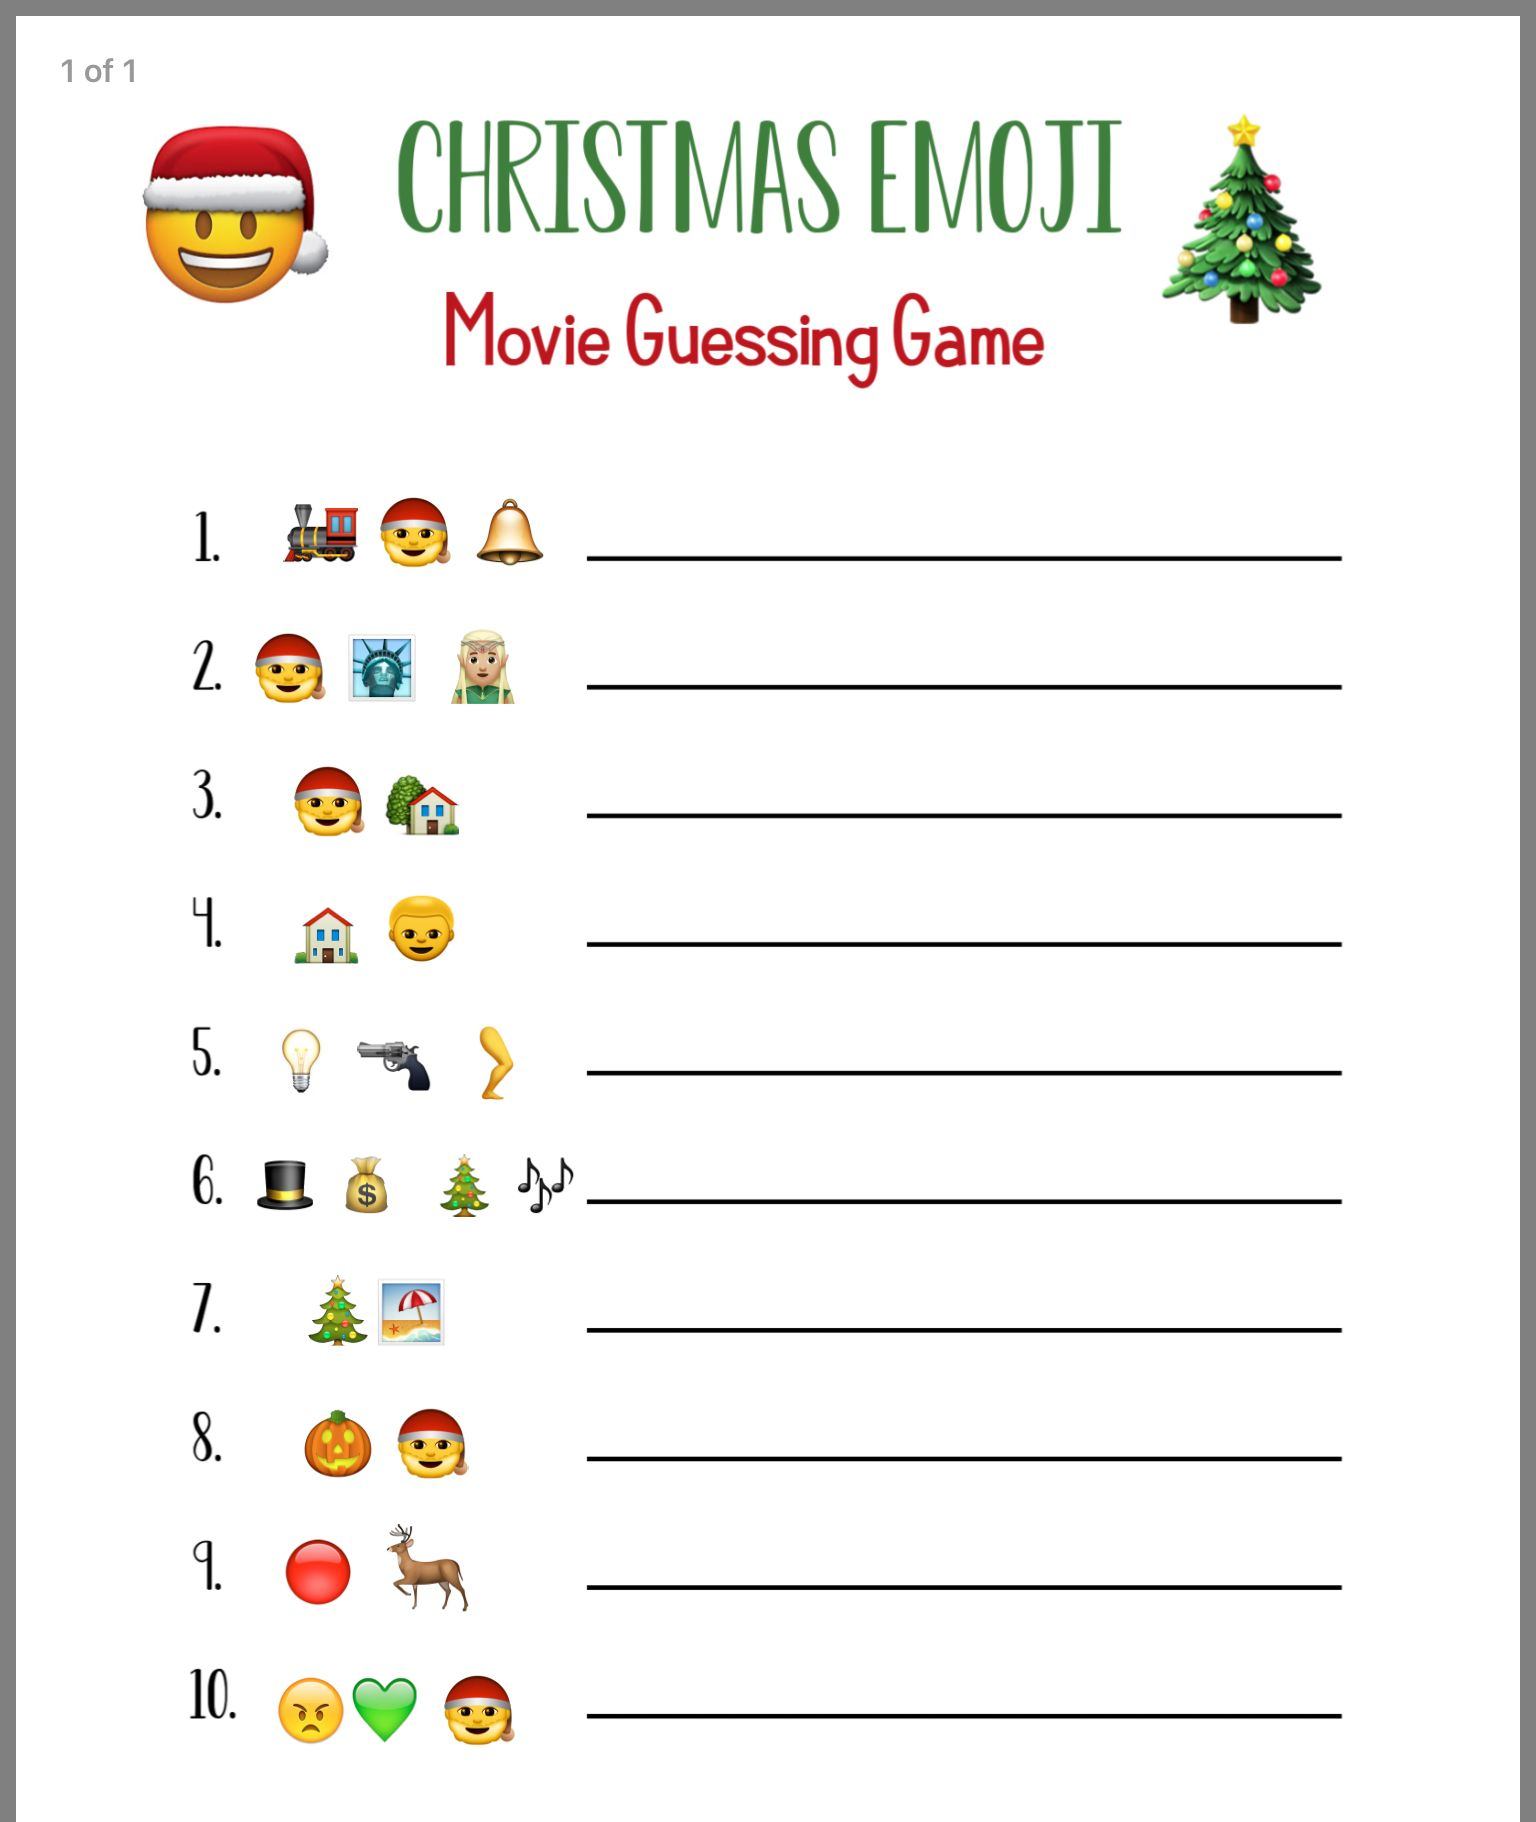 Pin By Linda Carson On Christmas Games Guessing Games For Kids Emoji Christmas Emoji Movie